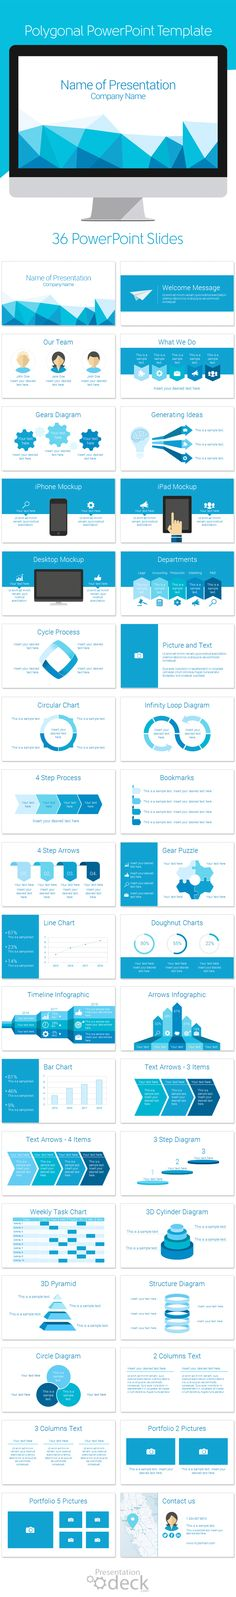 Polygonal PowerPoint template with 36 pre-designed slides. This template is multipurpose and can be used in any topics. #powerpoint #powerpoint_template #presentations